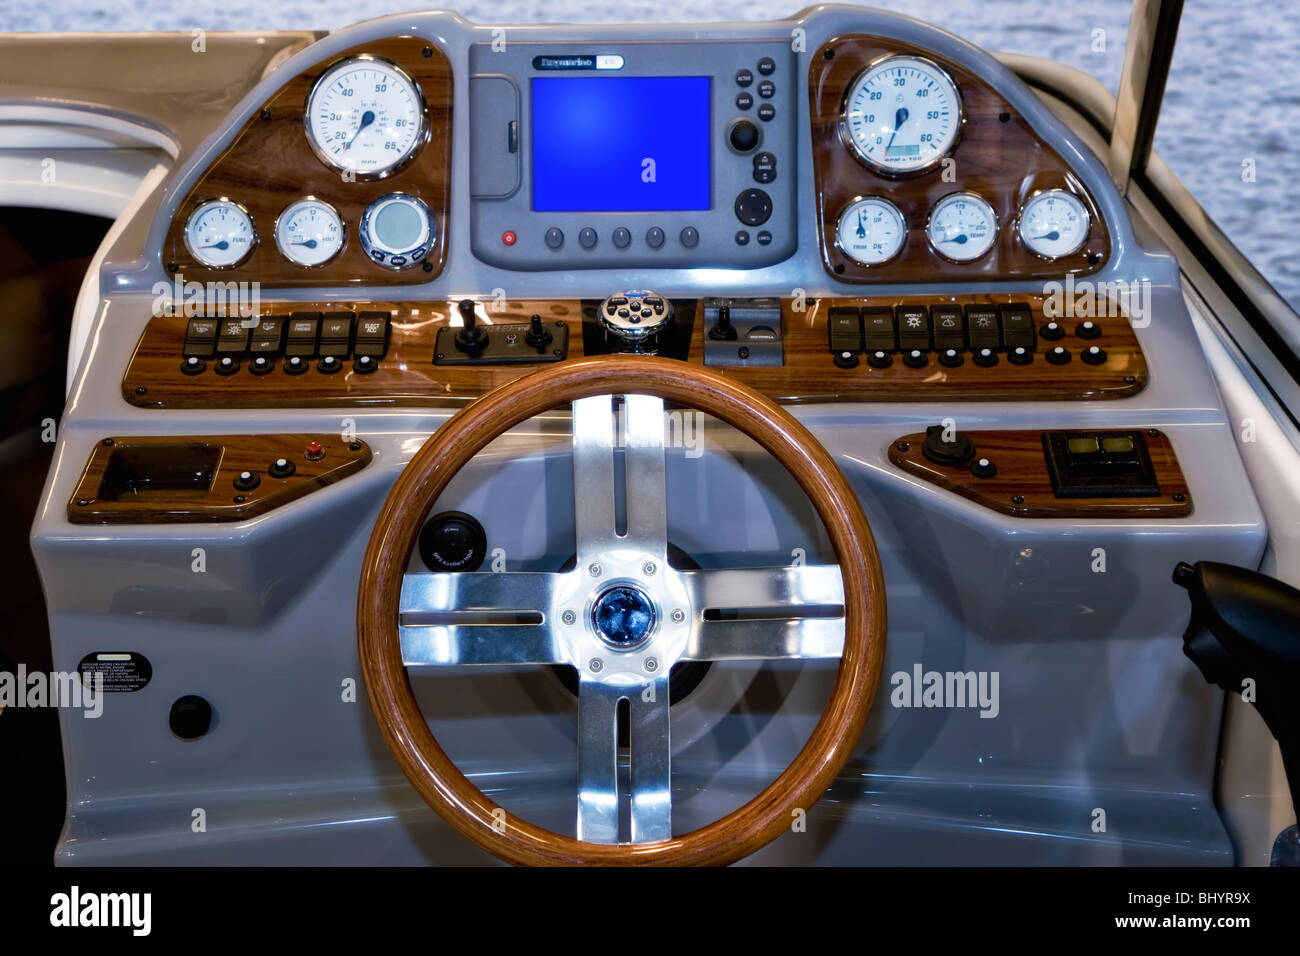 The Cockpit in a motorboat - Stock Image